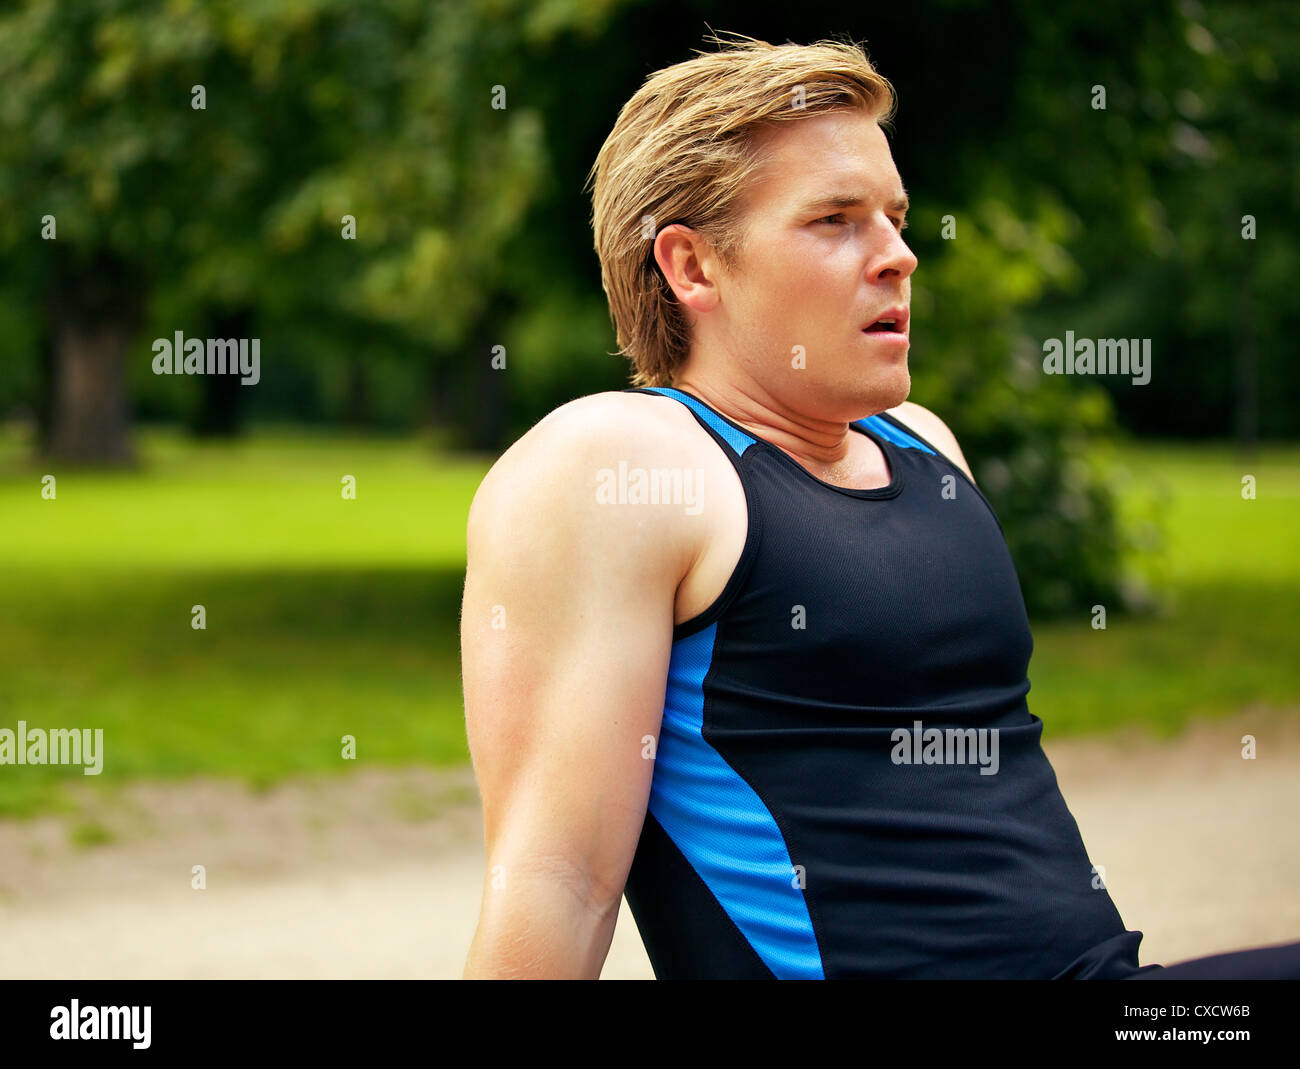 Athletic man resting after a tiring workout Stock Photo